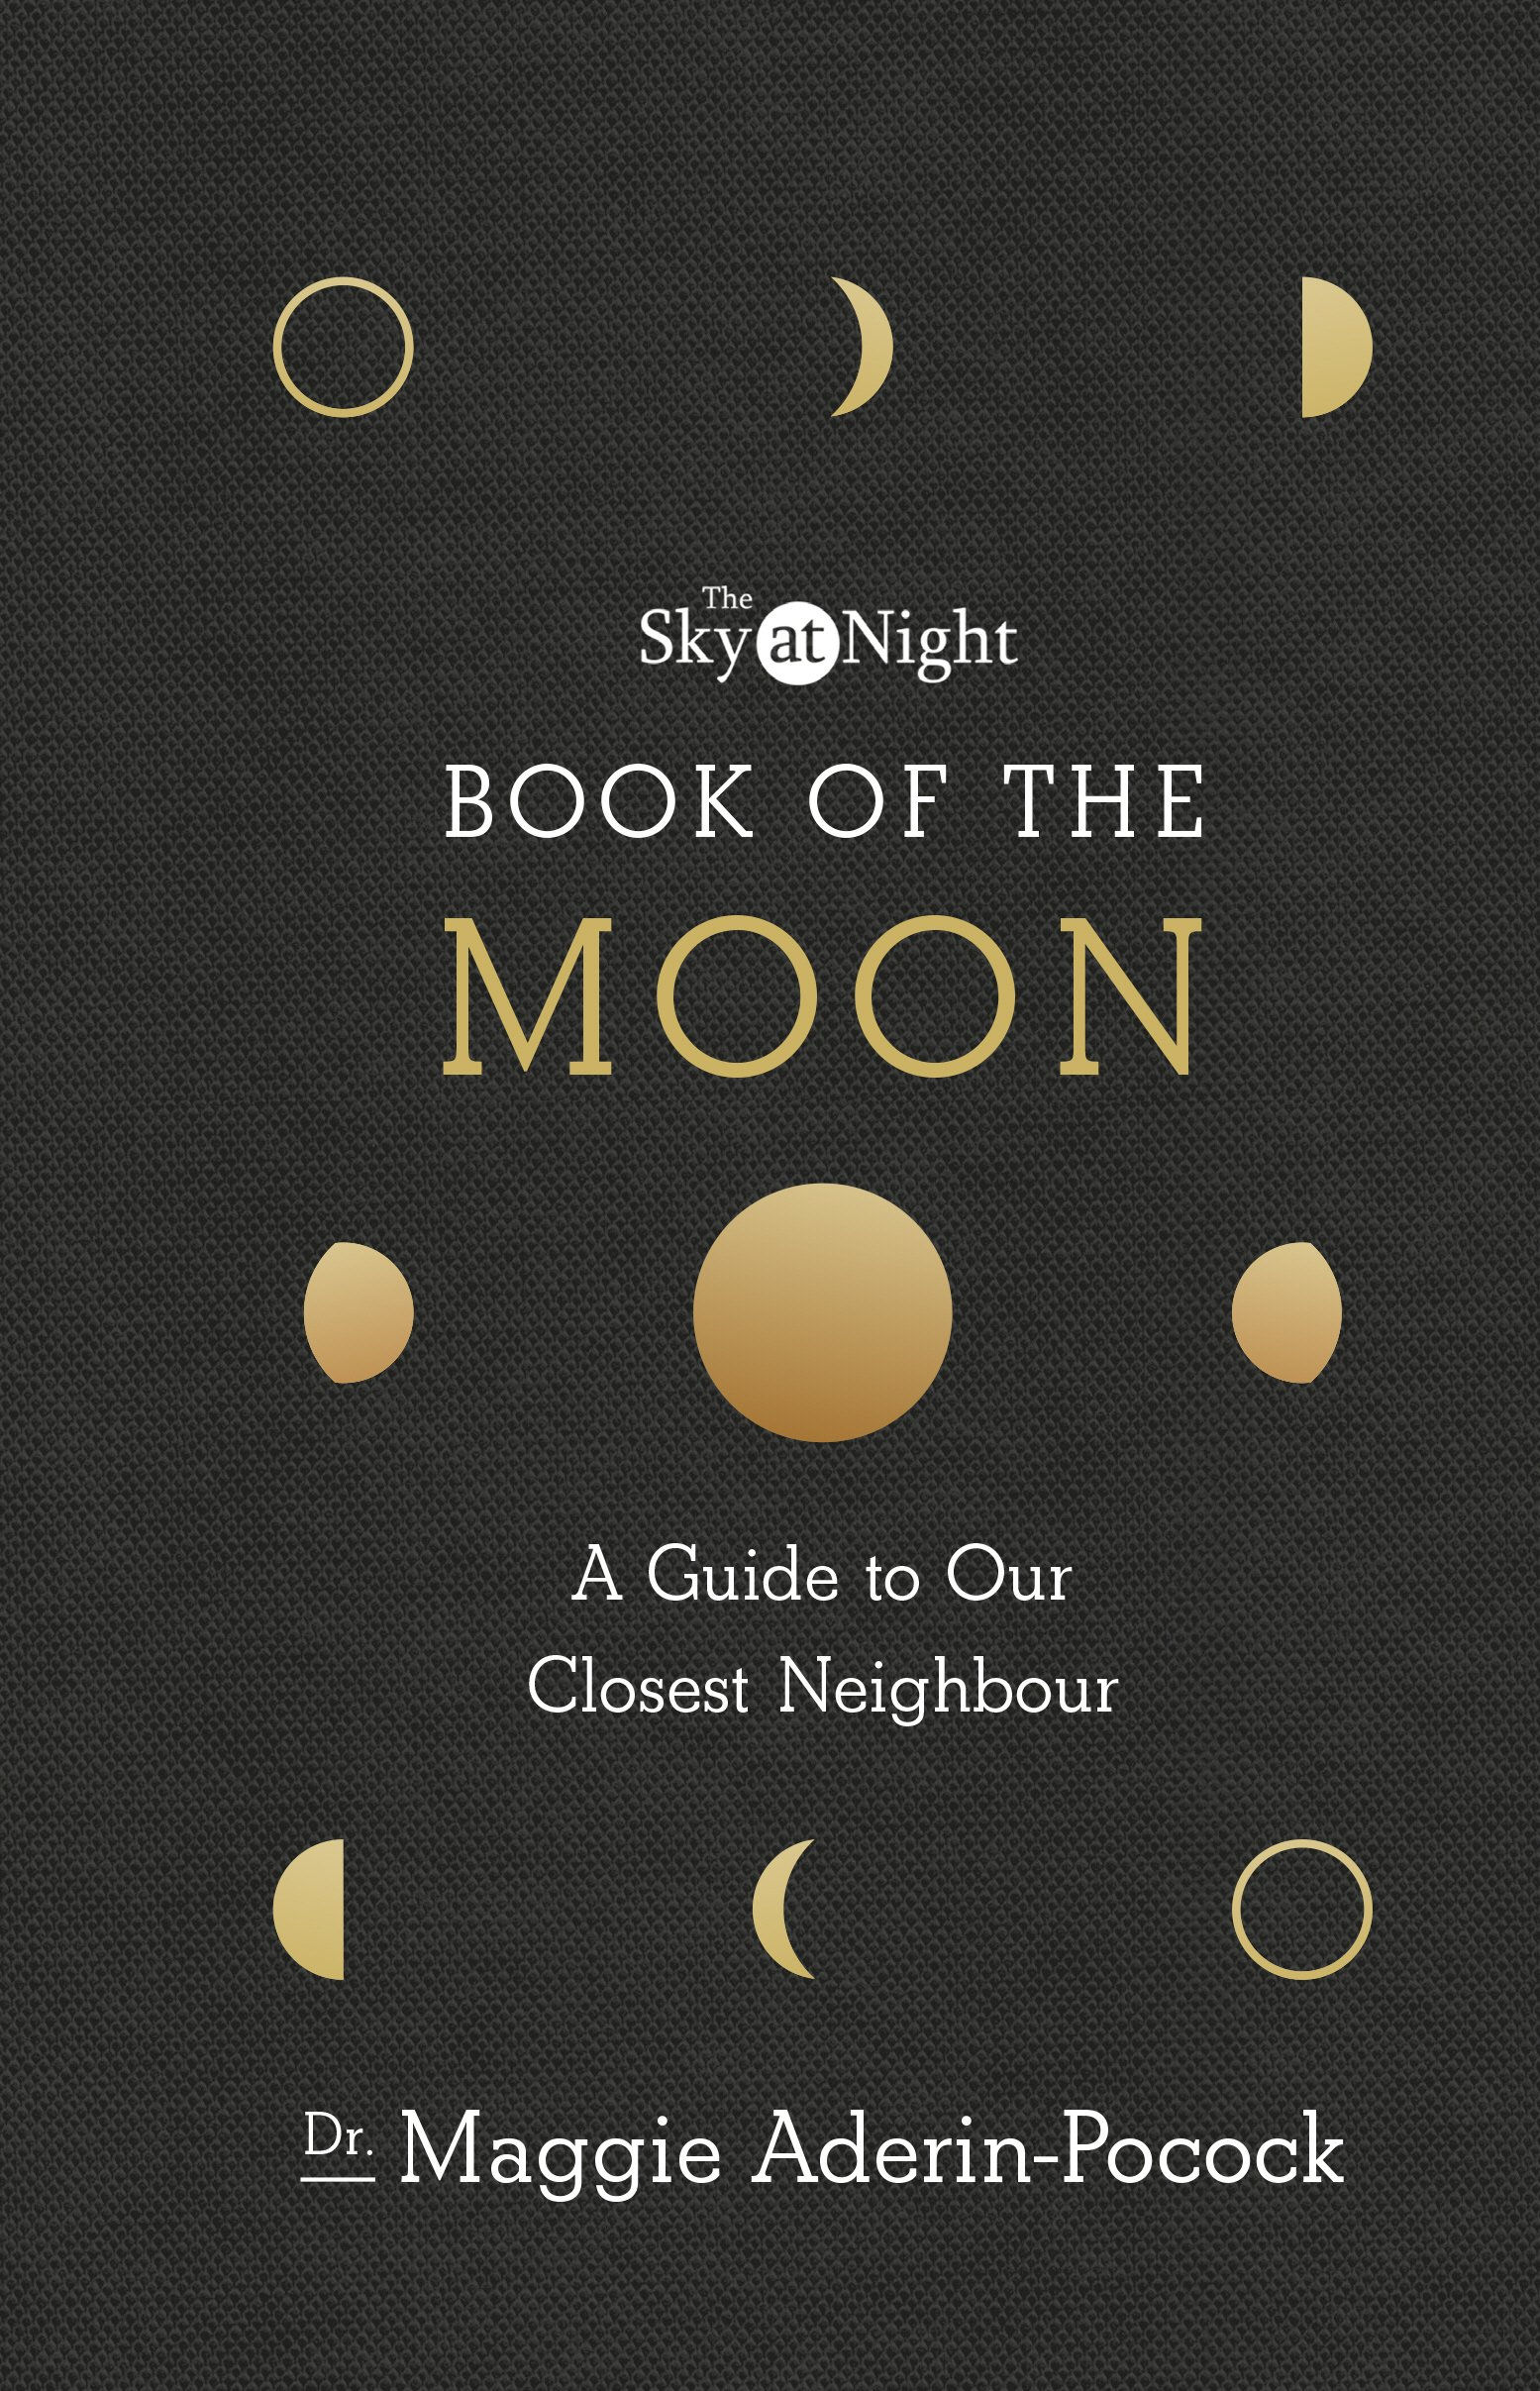 he Sky at Night: Book of the Moon – A Guide to Our Closest Neighbour